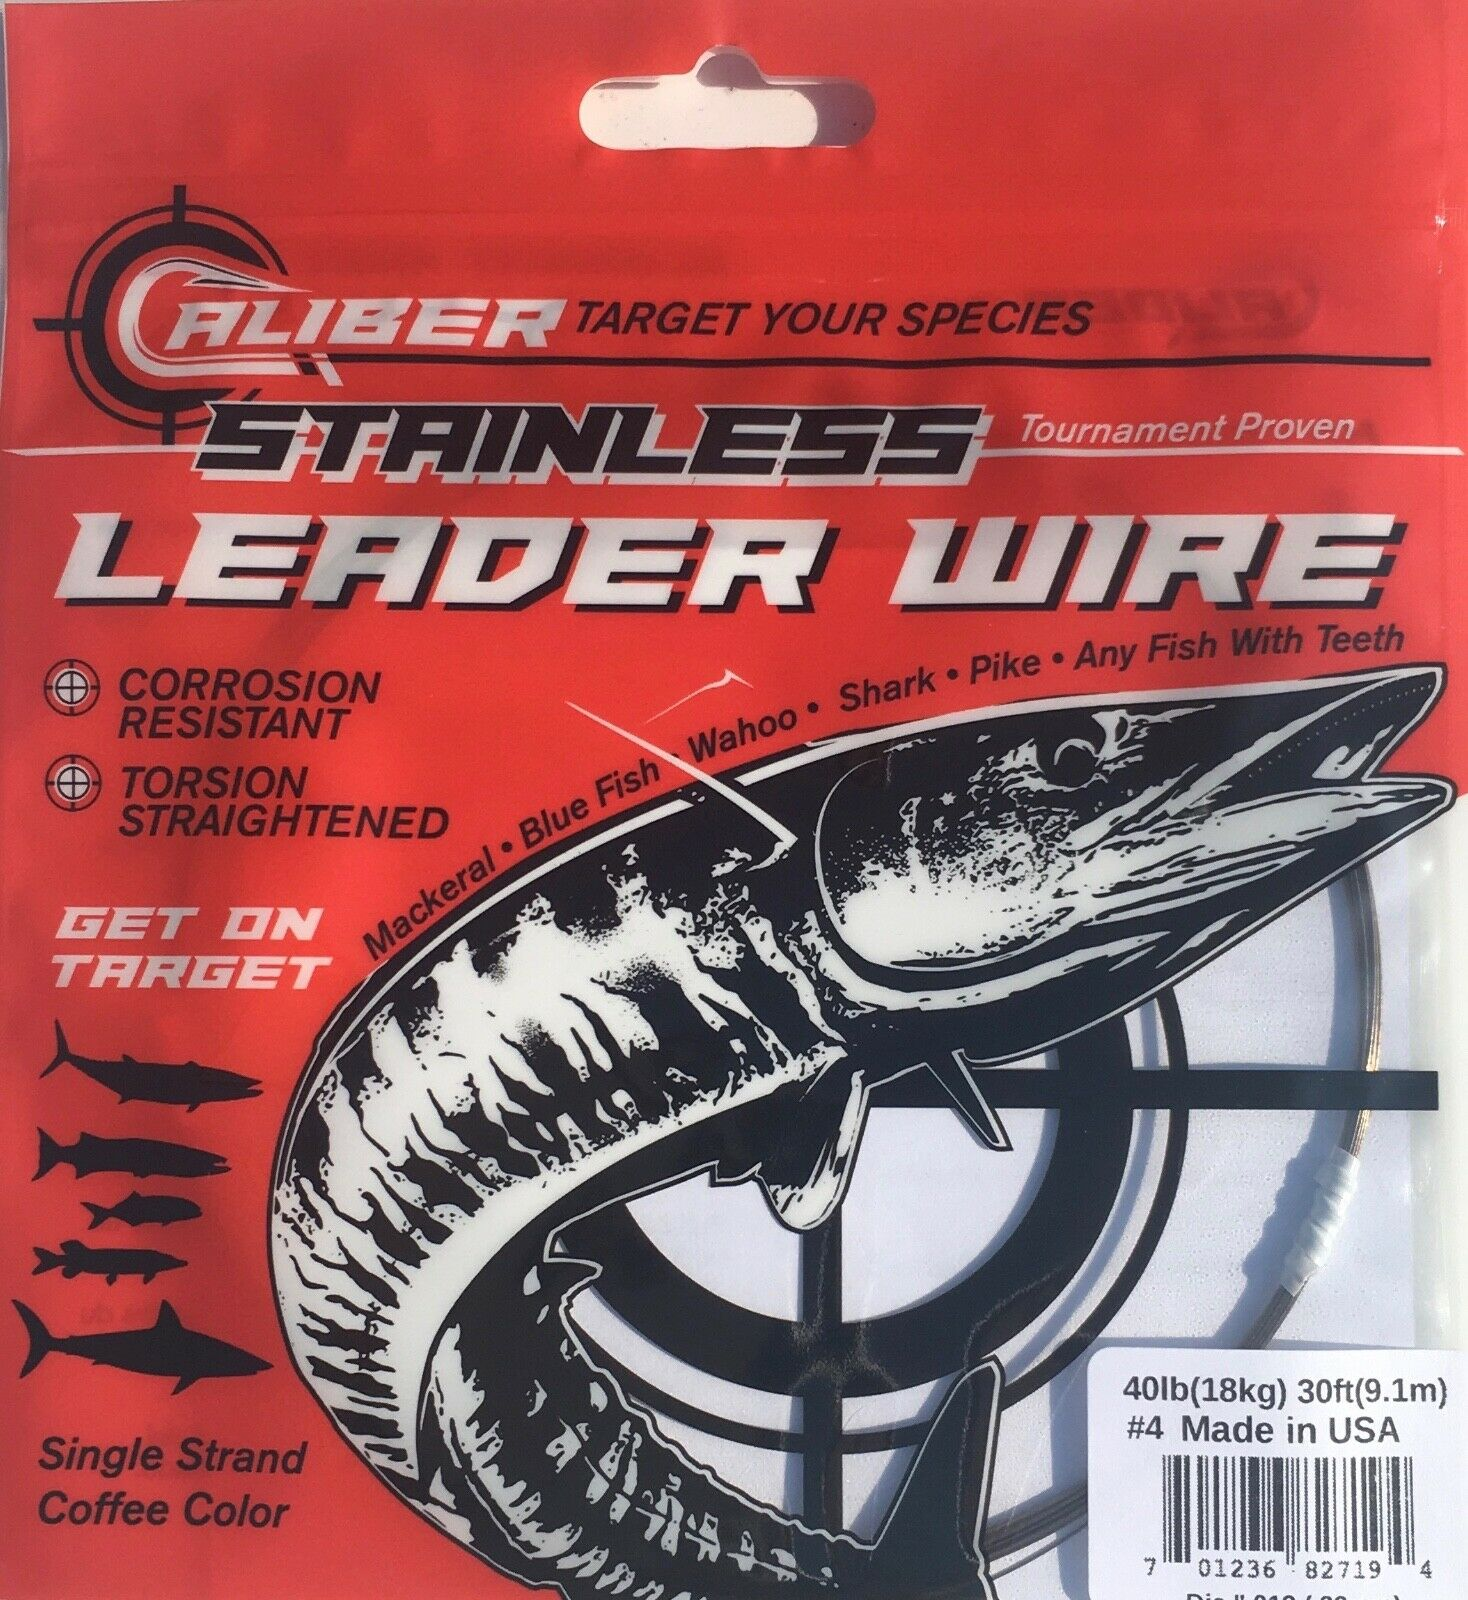 AFW TOOTH PROOF STAINLESS STEEL LEADER-Single Strand Wire-27LB Test 30FT BRIGHT